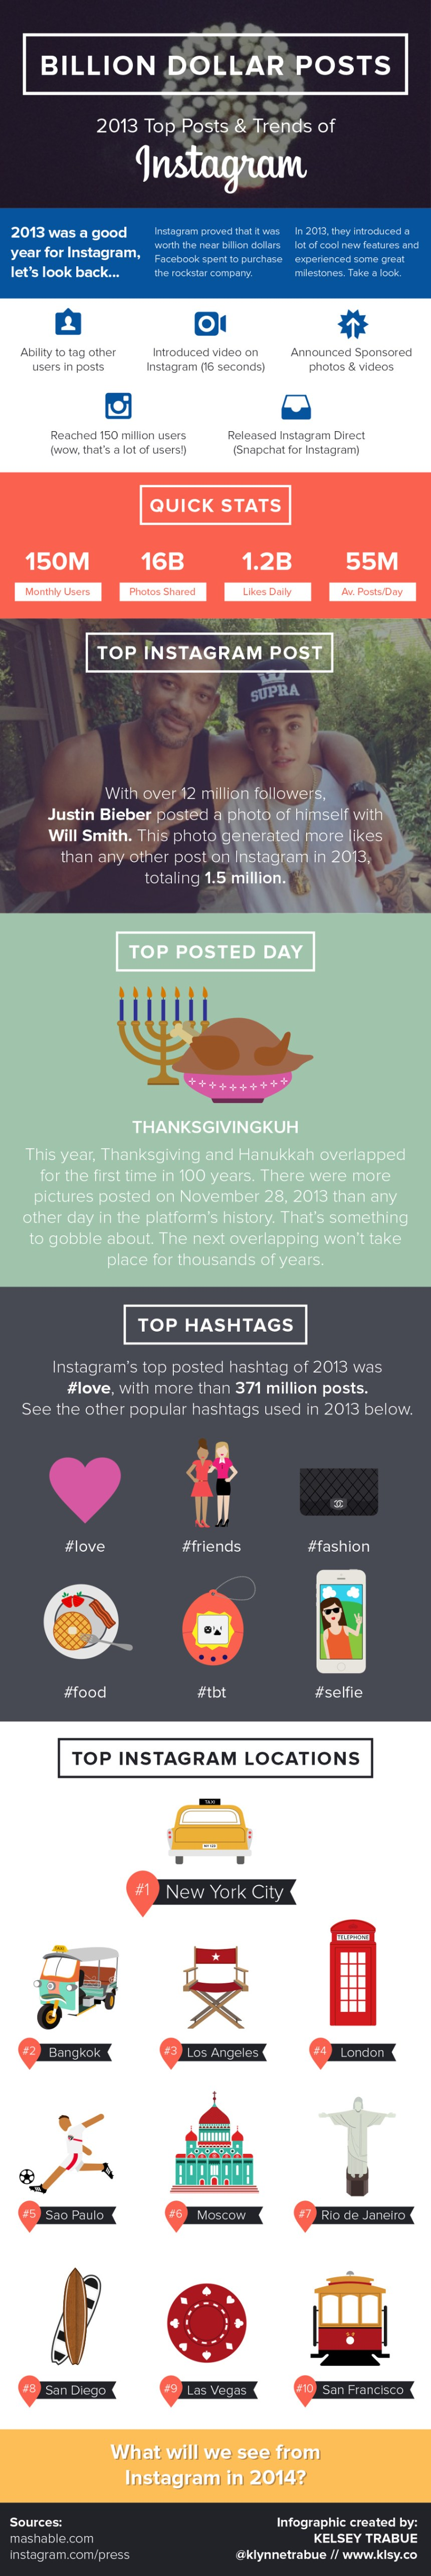 Top posts y tendencias en Instagram en 2013